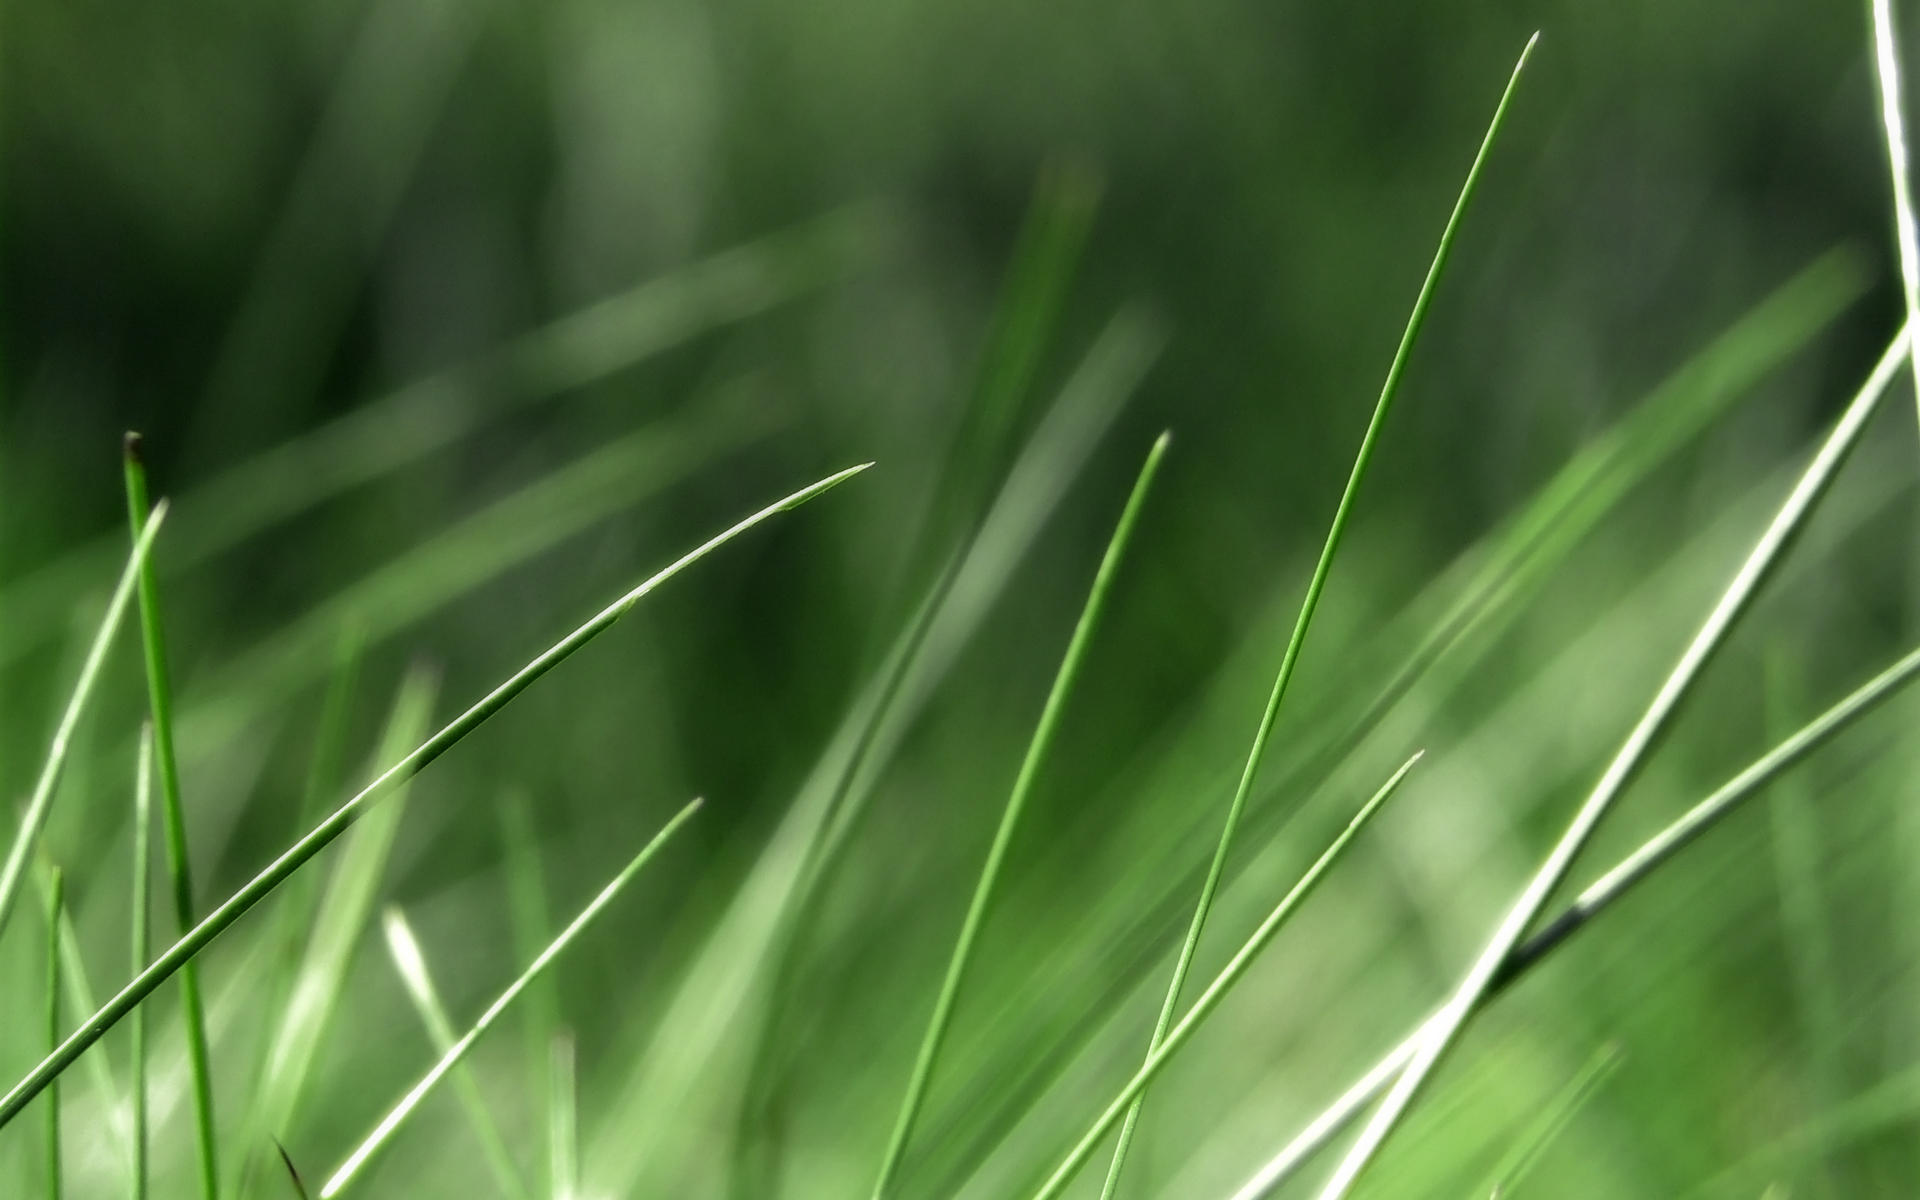 In the Grass by Vathanx